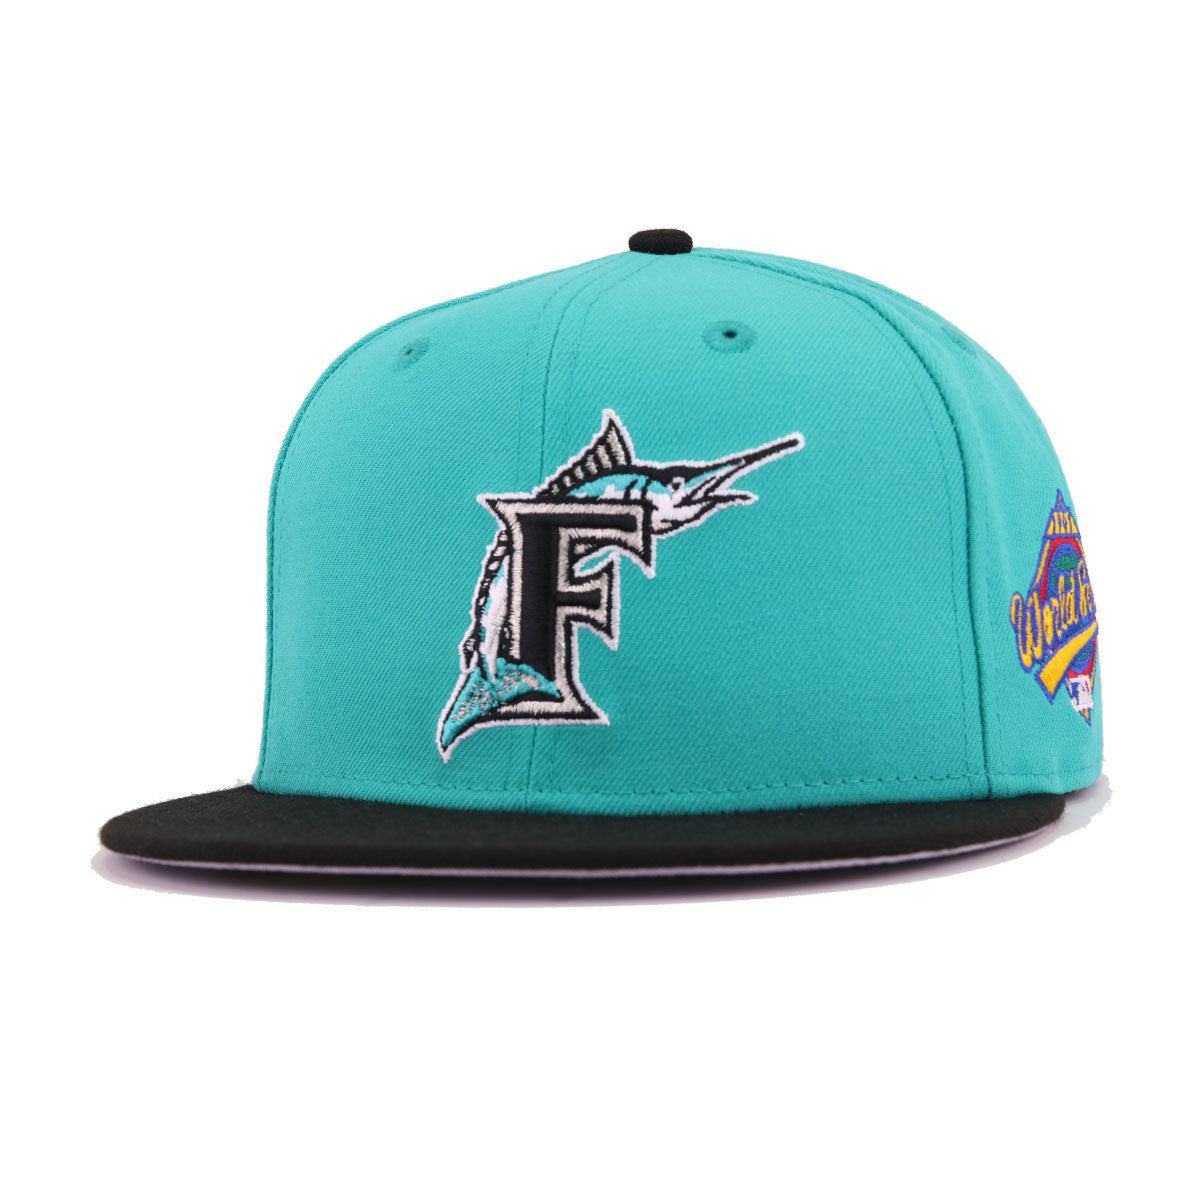 Florida Marlins Teal Black 1997 World Series Cooperstown New Era 59Fifty Fitted